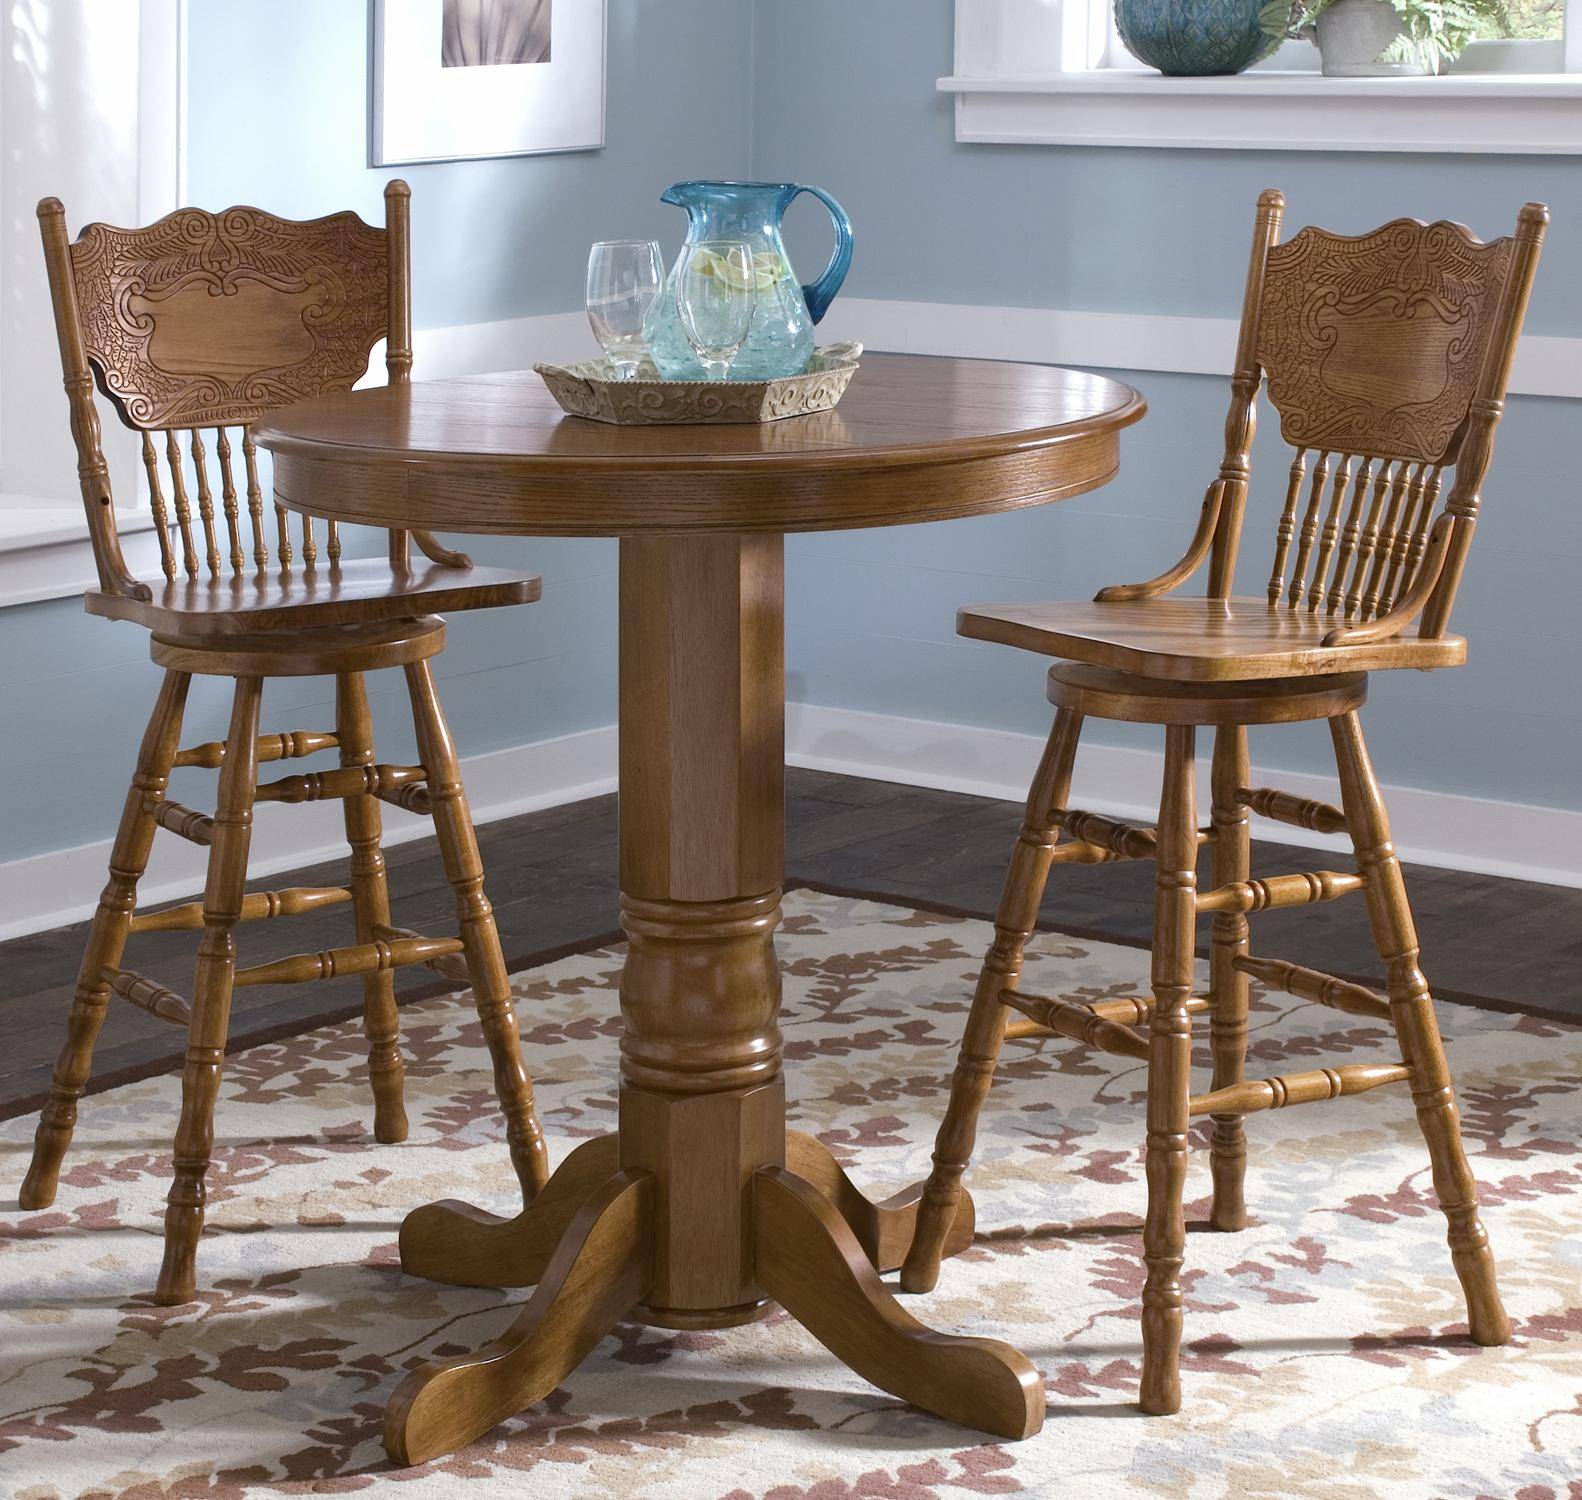 pub table and chairs 3 piece set 2 kids hair cutting liberty furniture nostalgia round dining with press back barstools